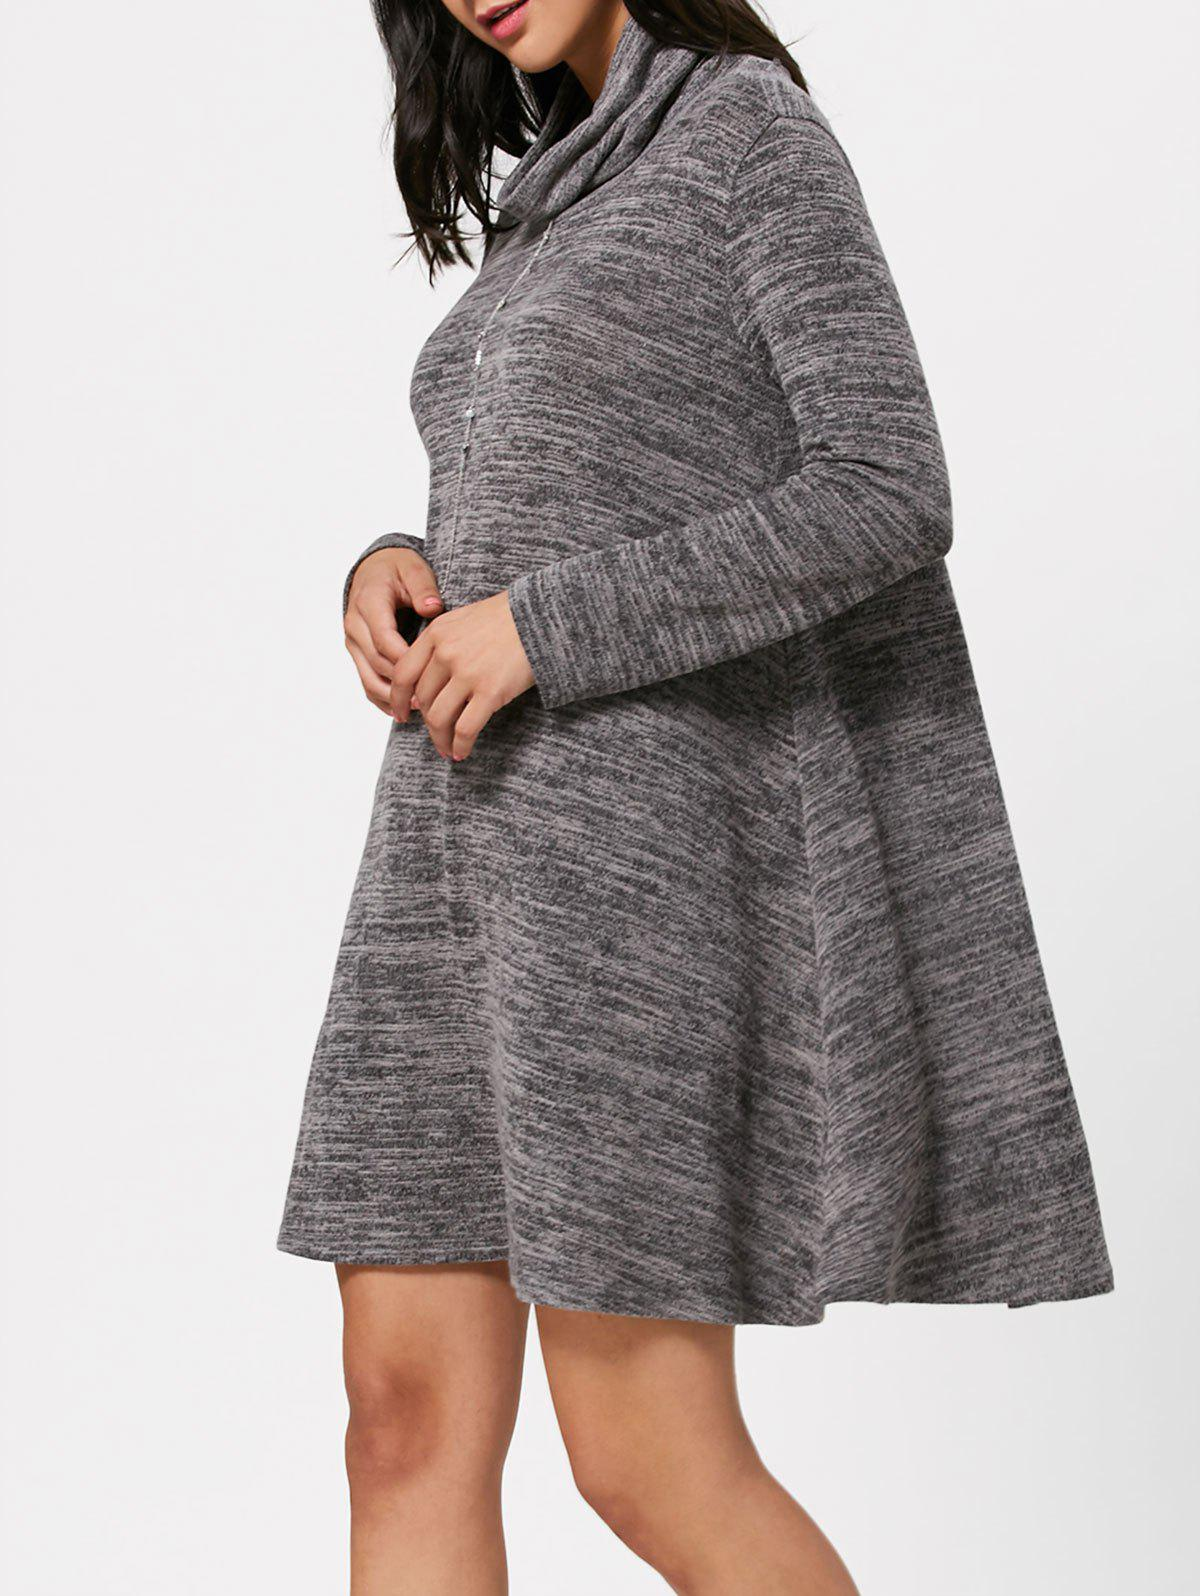 High Neck Long Sleeve Knit Tunic Dress - GRAY S